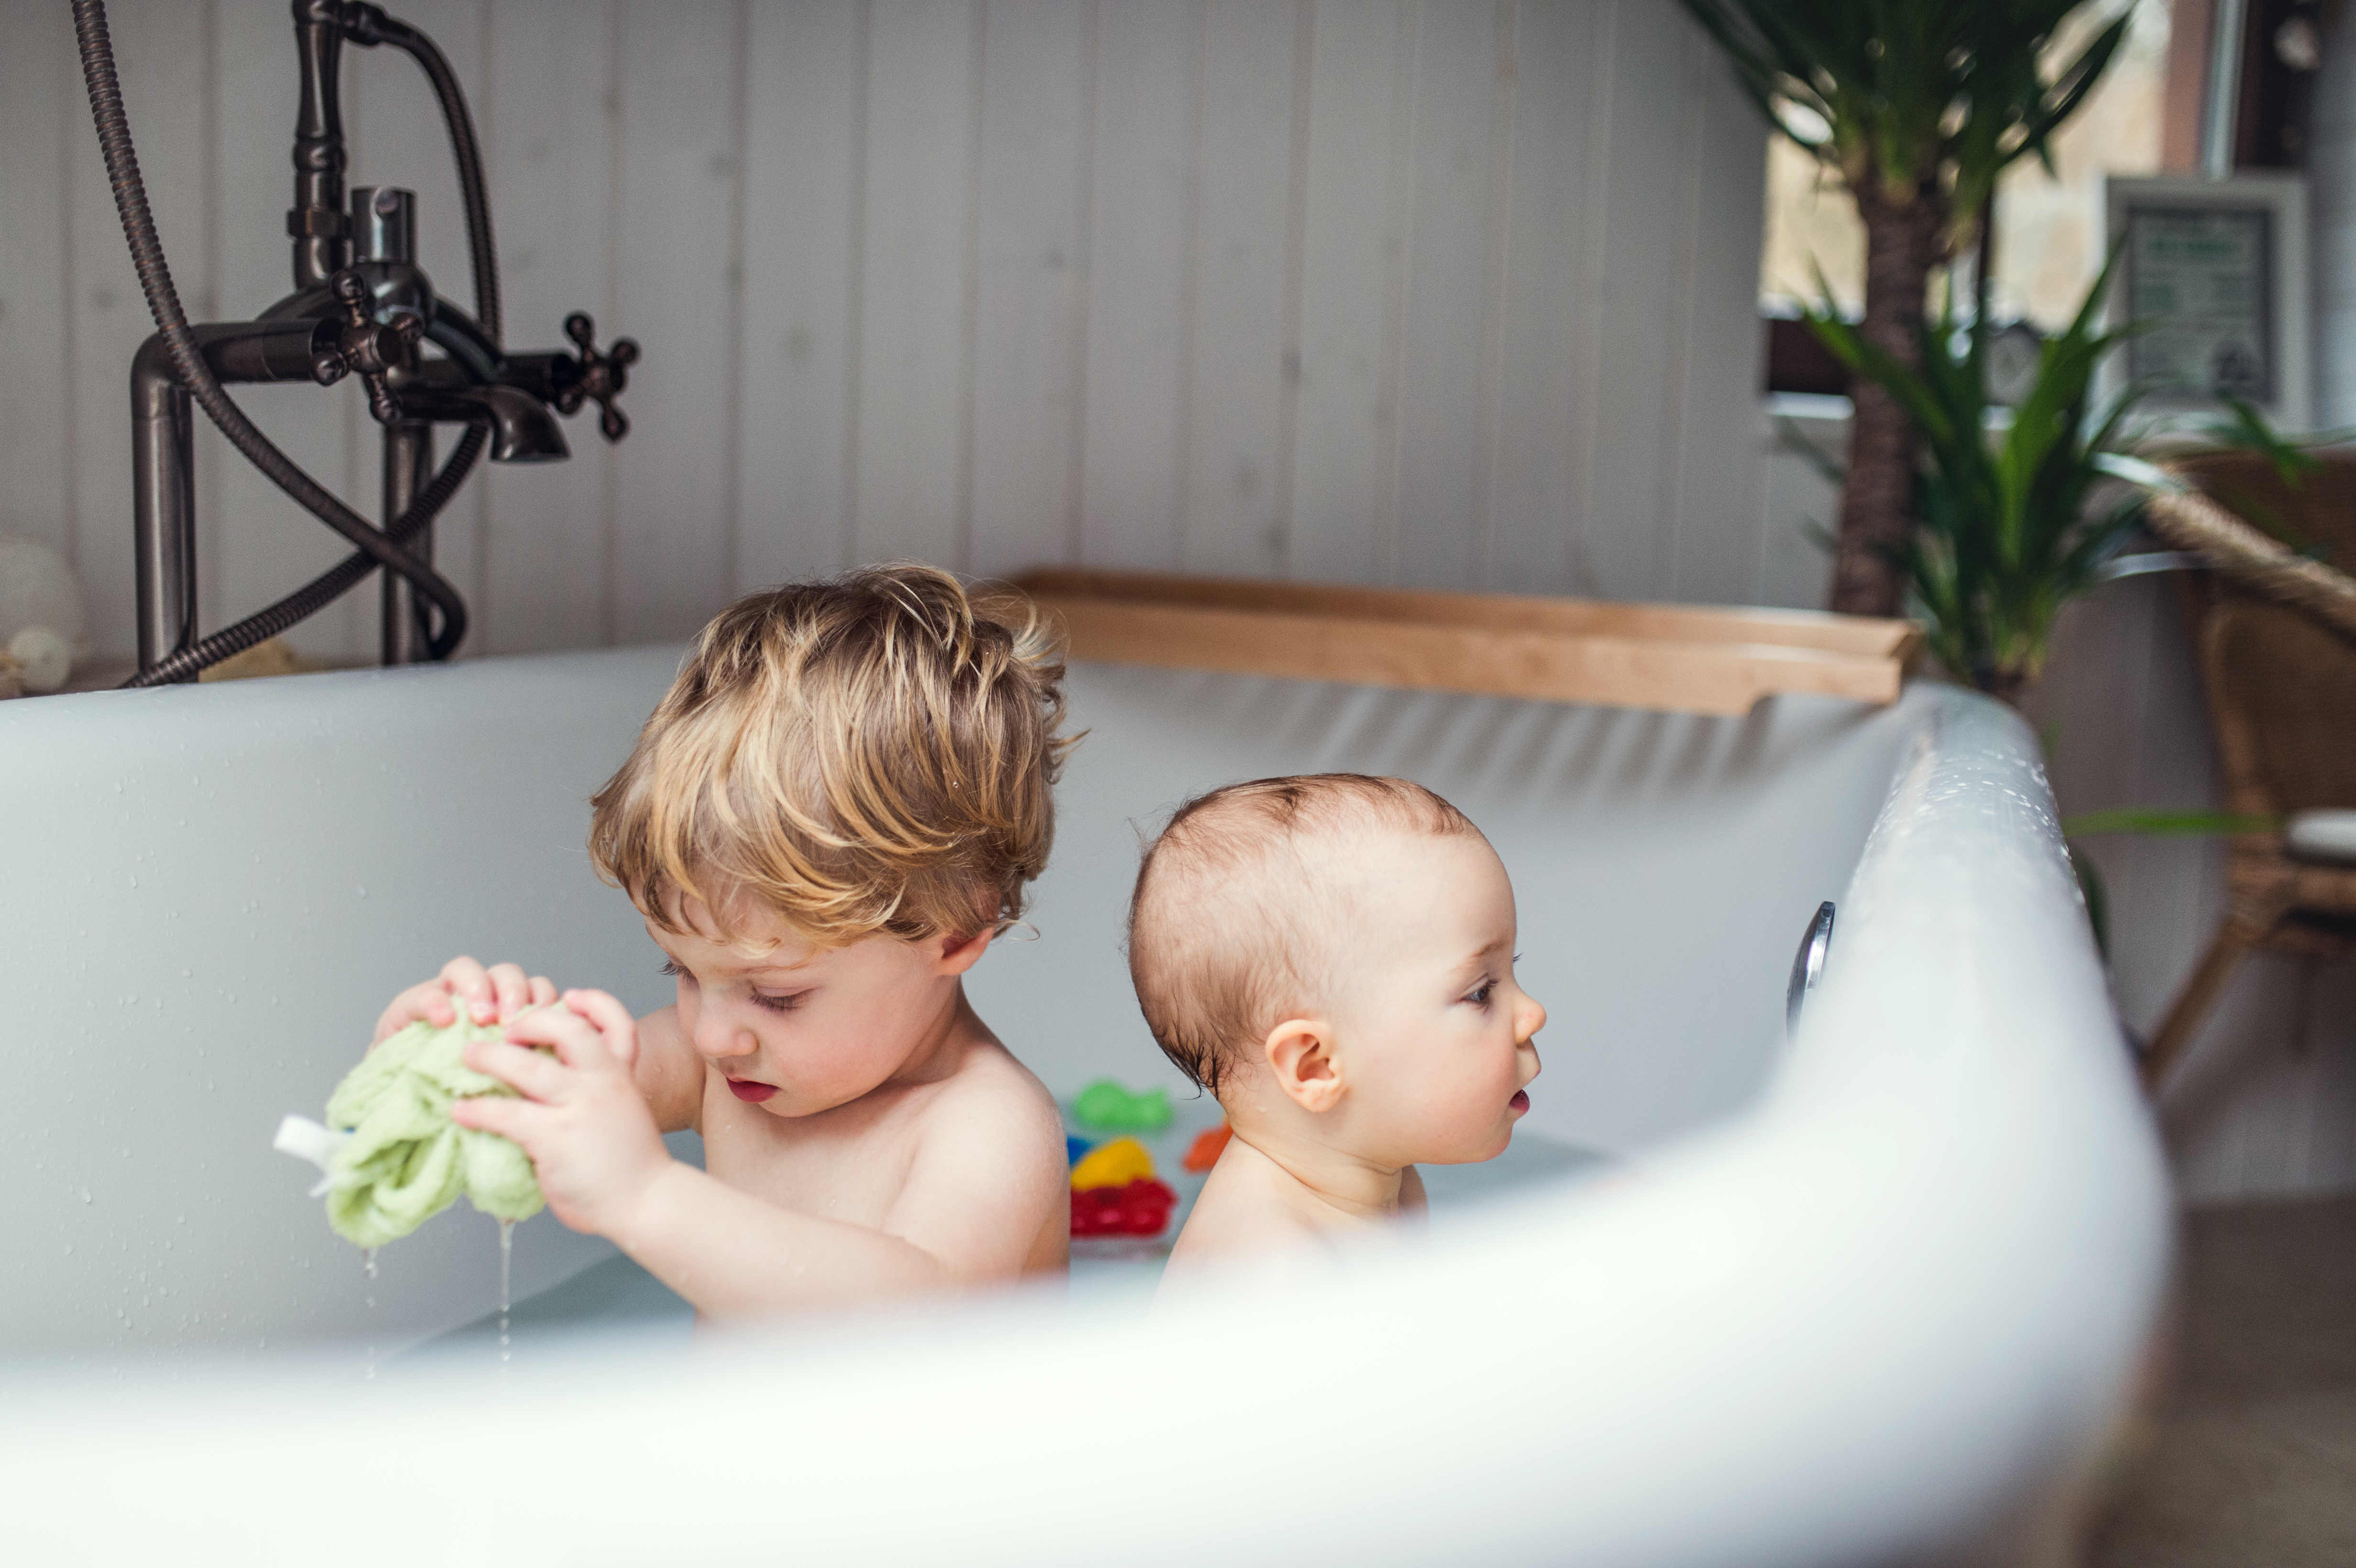 Two Toddler Children Having A Bath